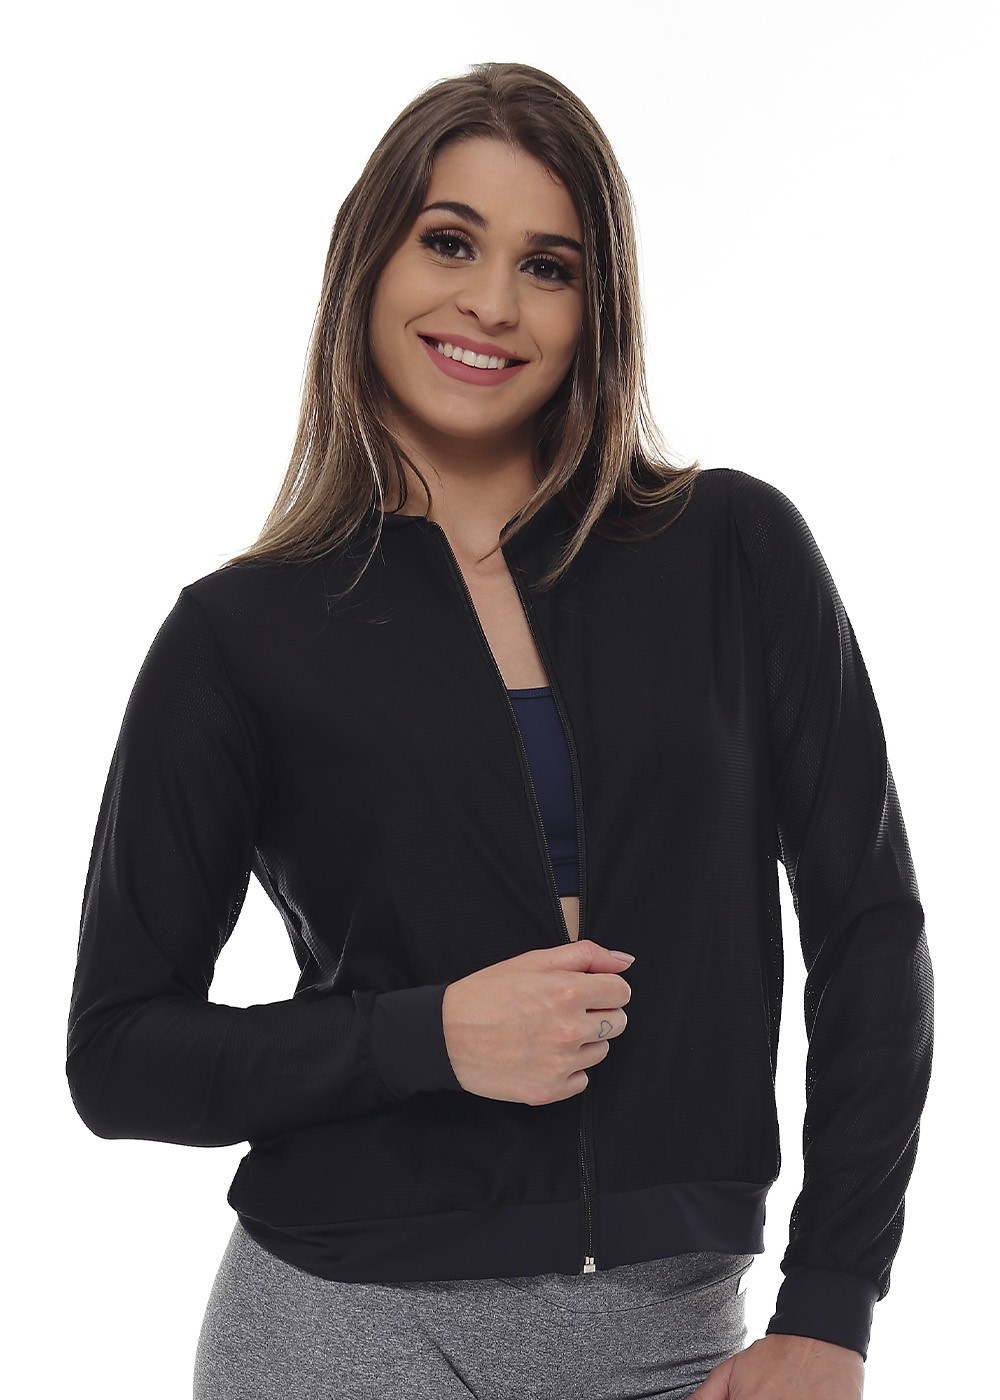 JAQUETA FASHION FEMININA JUST FIT - PRETO TELA